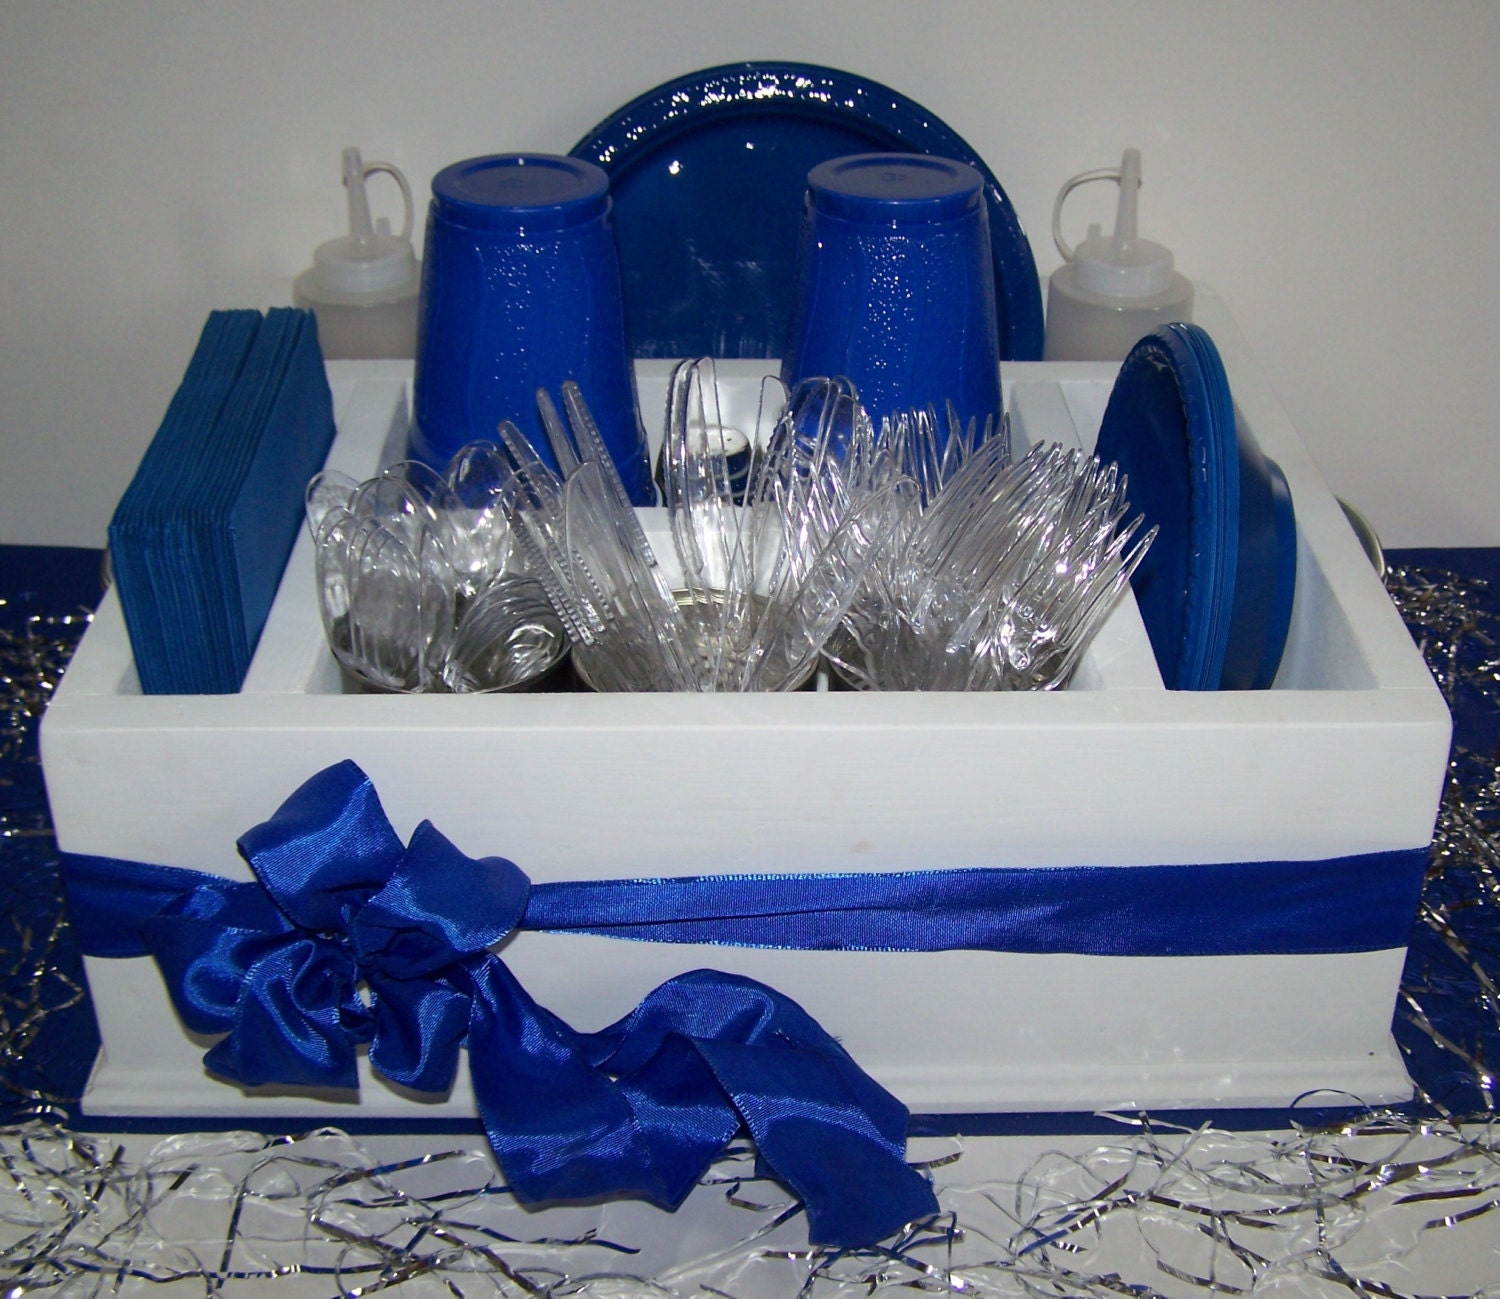 White with blue ribbon tableware caddy organizer for napkins